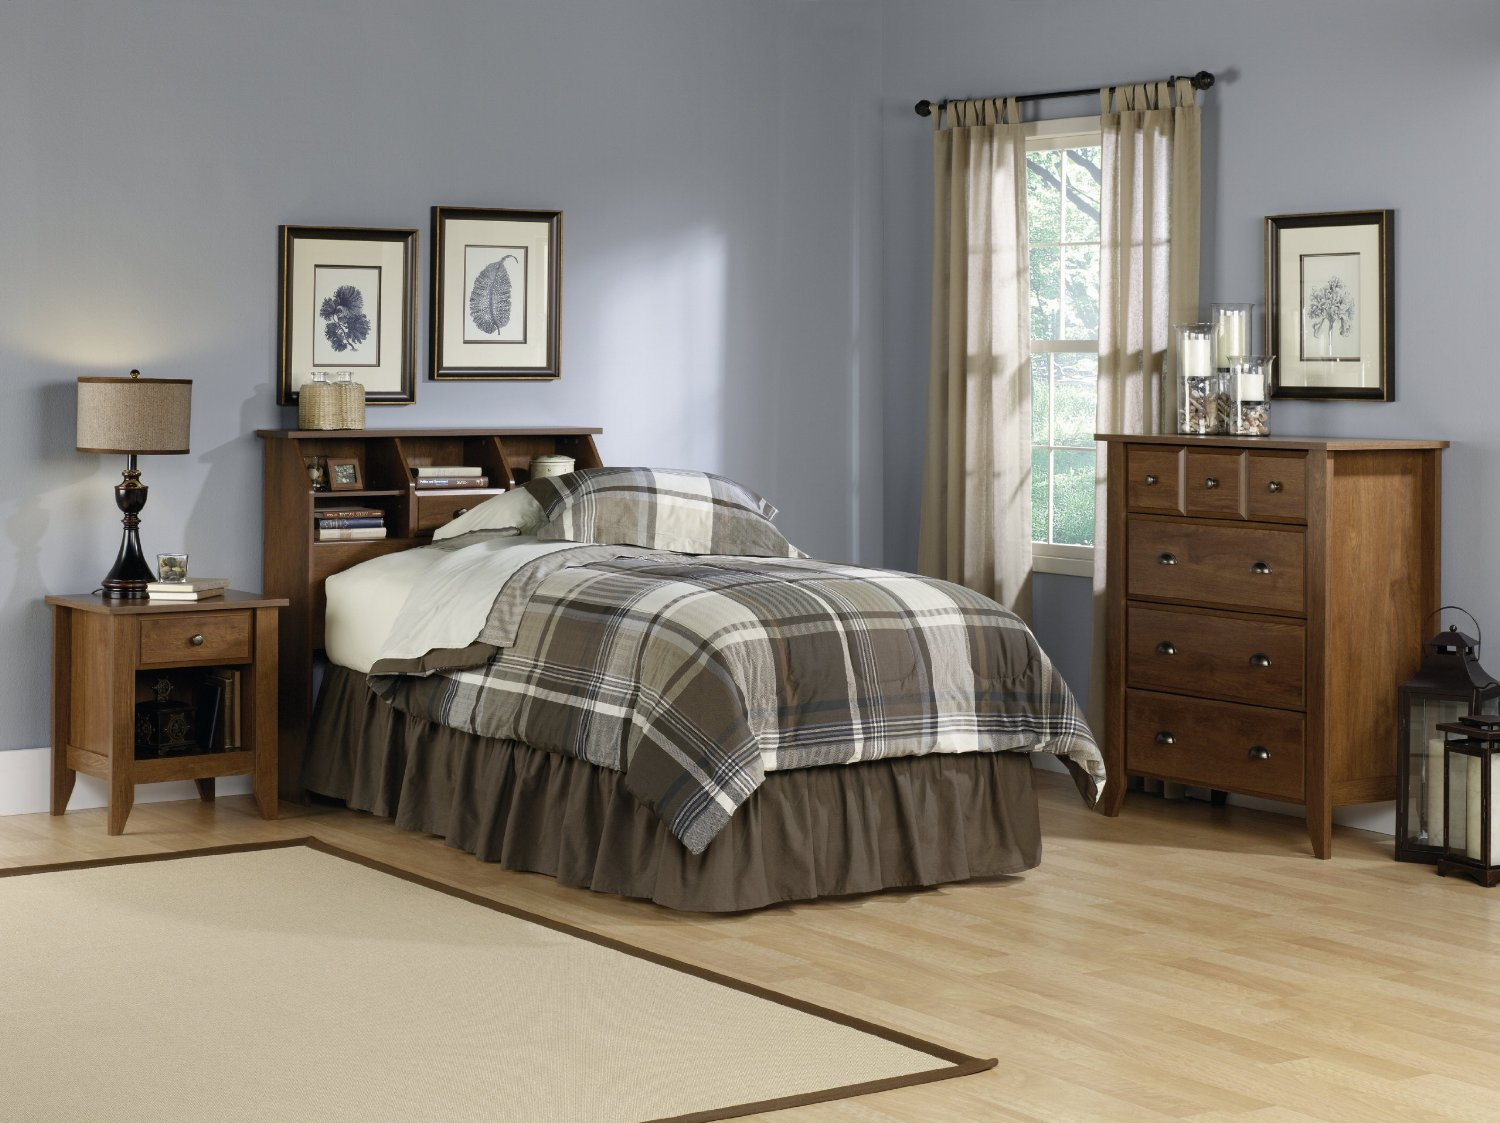 charming brown wooden dresser by sauder furniture on wooden floor plus bed for bedroom decor ideas